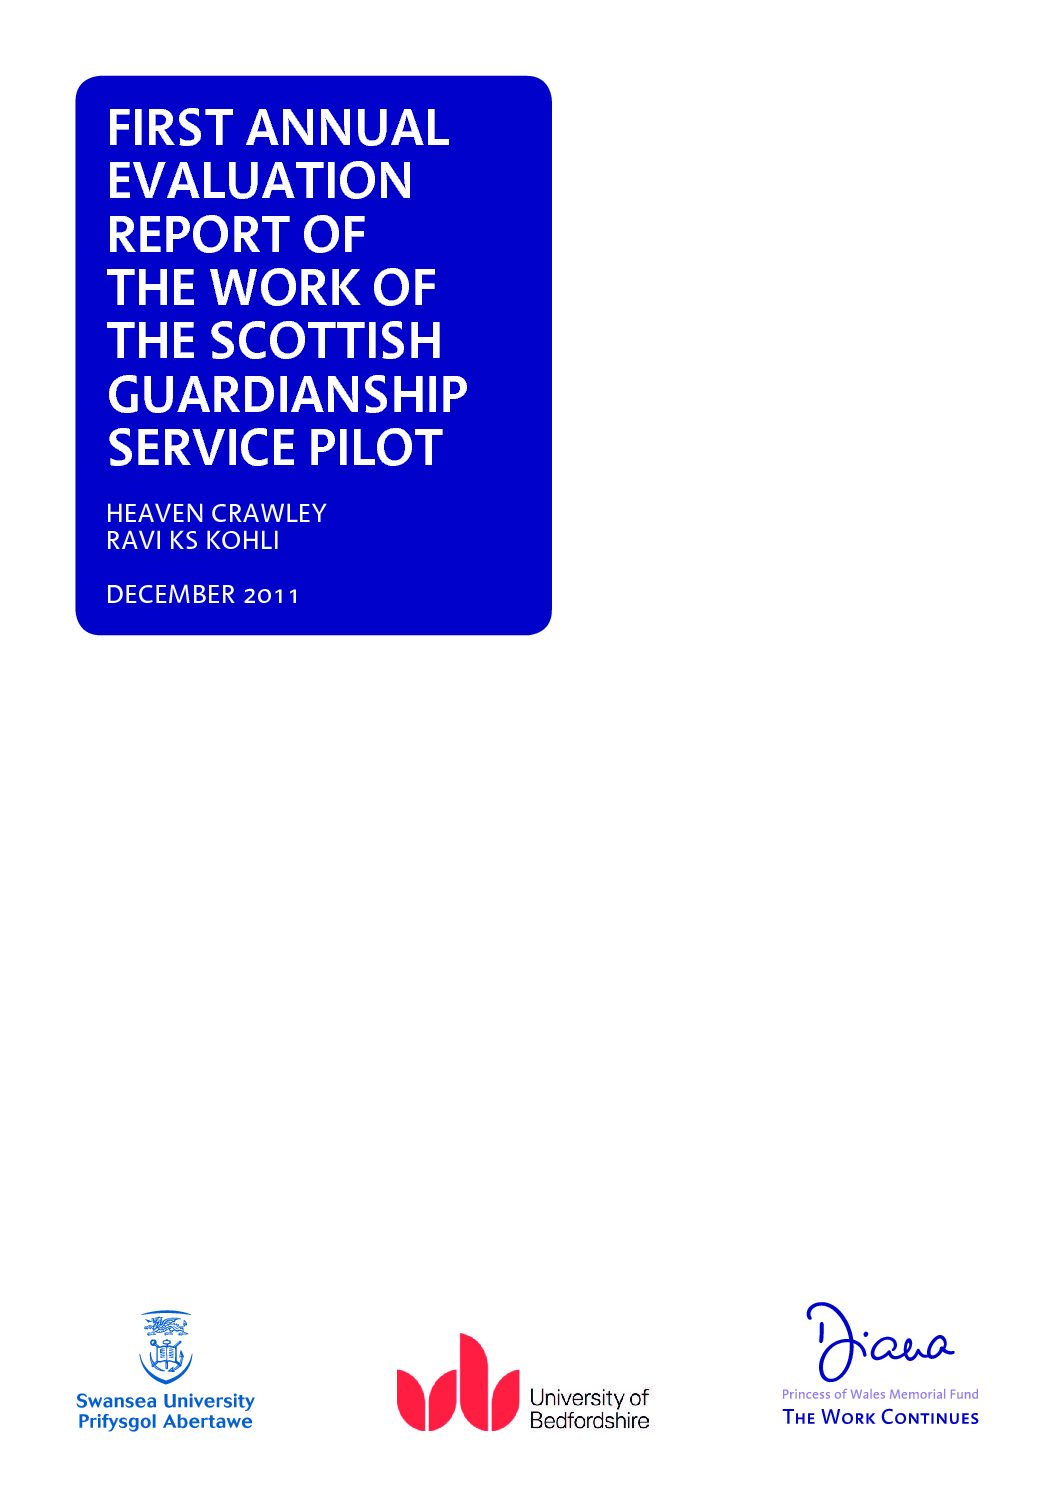 First-Annual-Evaluation-Report-of-the-Work-of-the-Scottish-Guardianship-Service-Pilot-PDF-pdf